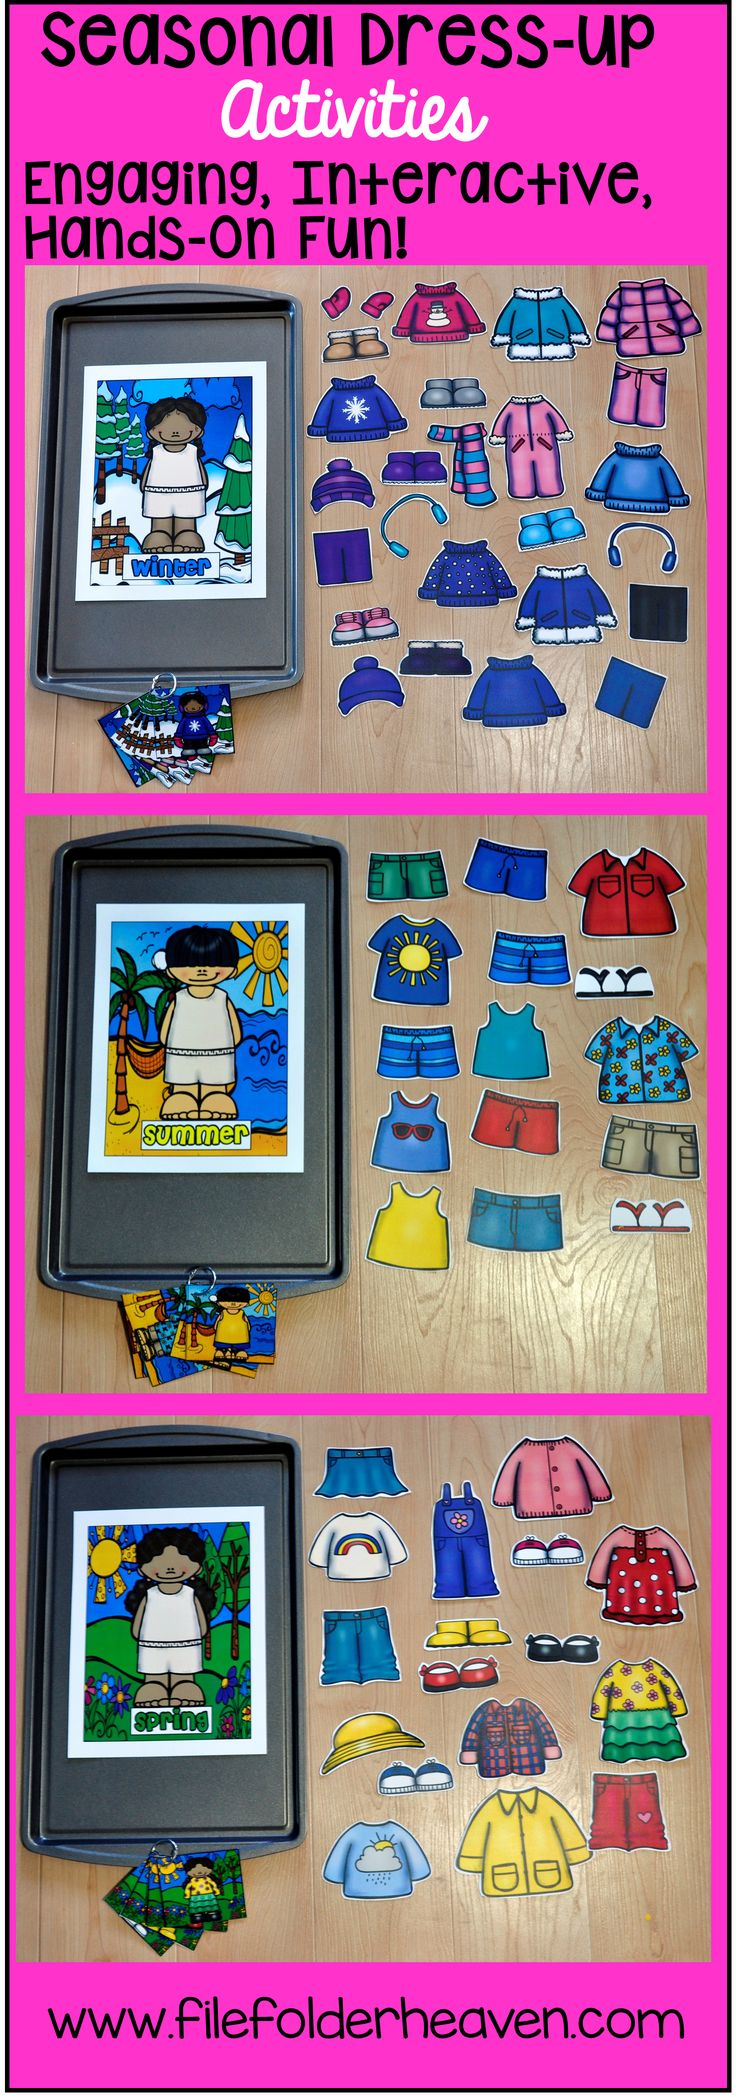 These Seasonal Dress Up Activities can be used as cookie sheet activities, binder work, or a magnetic center. These activities include 8 different sets: 1 Winter Girl With Seasonal Clothing 1 Winter Boy With Seasonal Clothing 1 Spring Girl With Seasonal Clothing 1 Spring Boy With Seasonal Clothing 1 Summer Girl With Seasonal Clothing 1 Summer Boy With Seasonal Clothing 1 Fall Girl With With Seasonal Clothing 1 Fall Boy With Seasonal Clothing